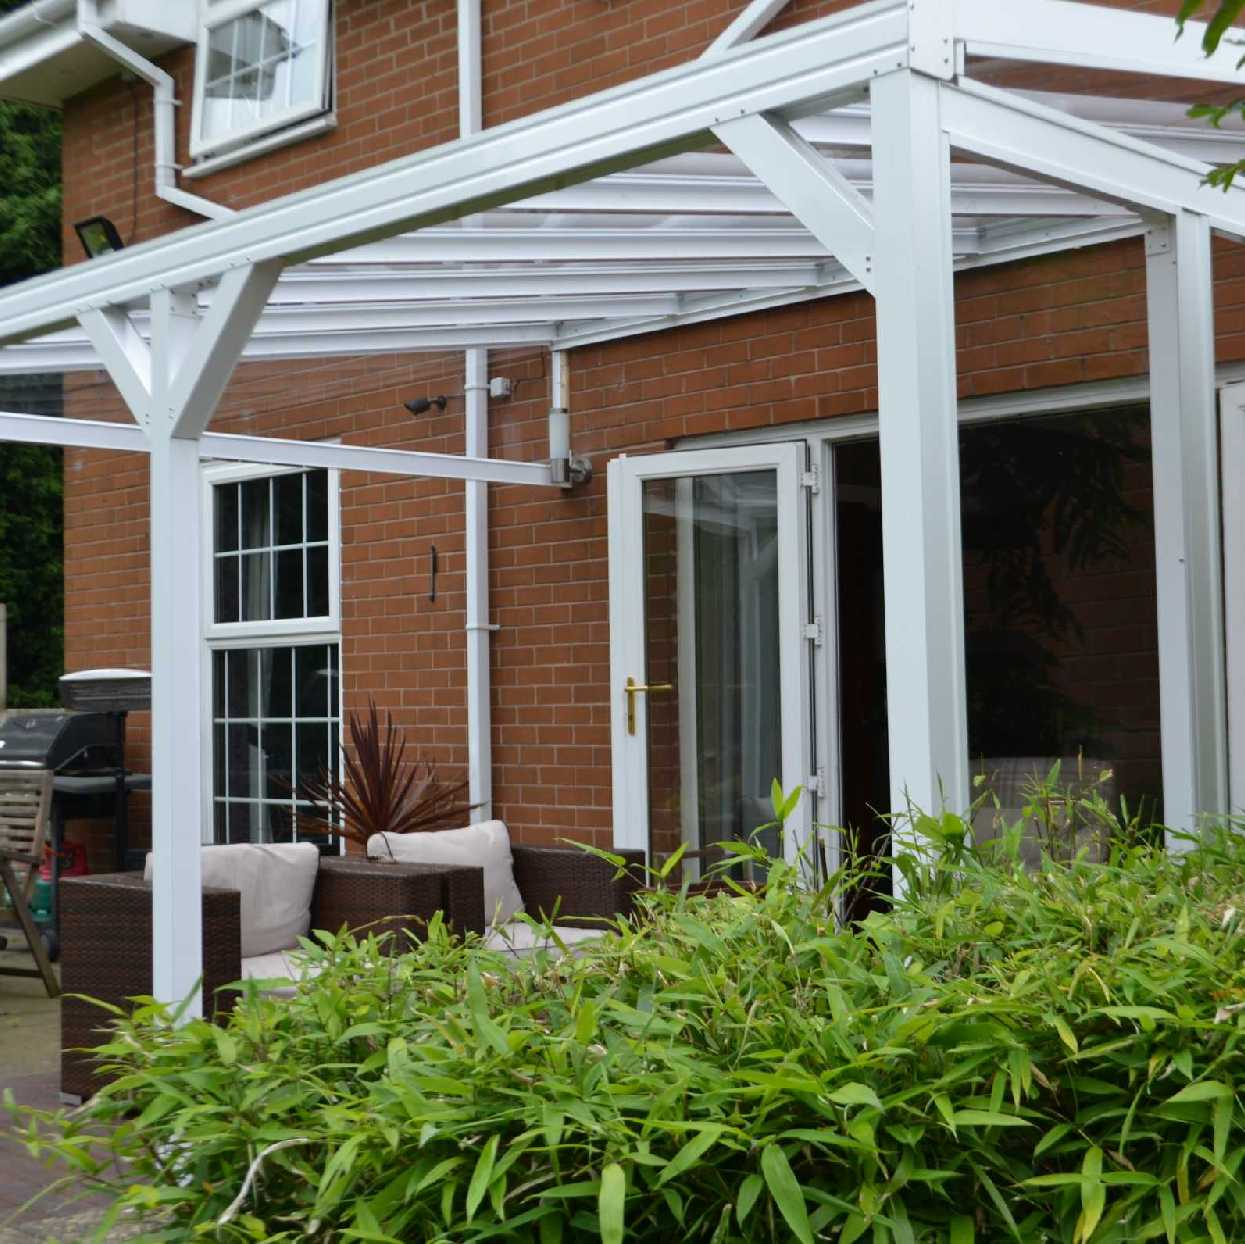 Omega Smart White Lean-To Canopy with 6mm Glass Clear Plate Polycarbonate Glazing - 5.6m (W) x 1.5m (P), (3) Supporting Posts from Omega Build